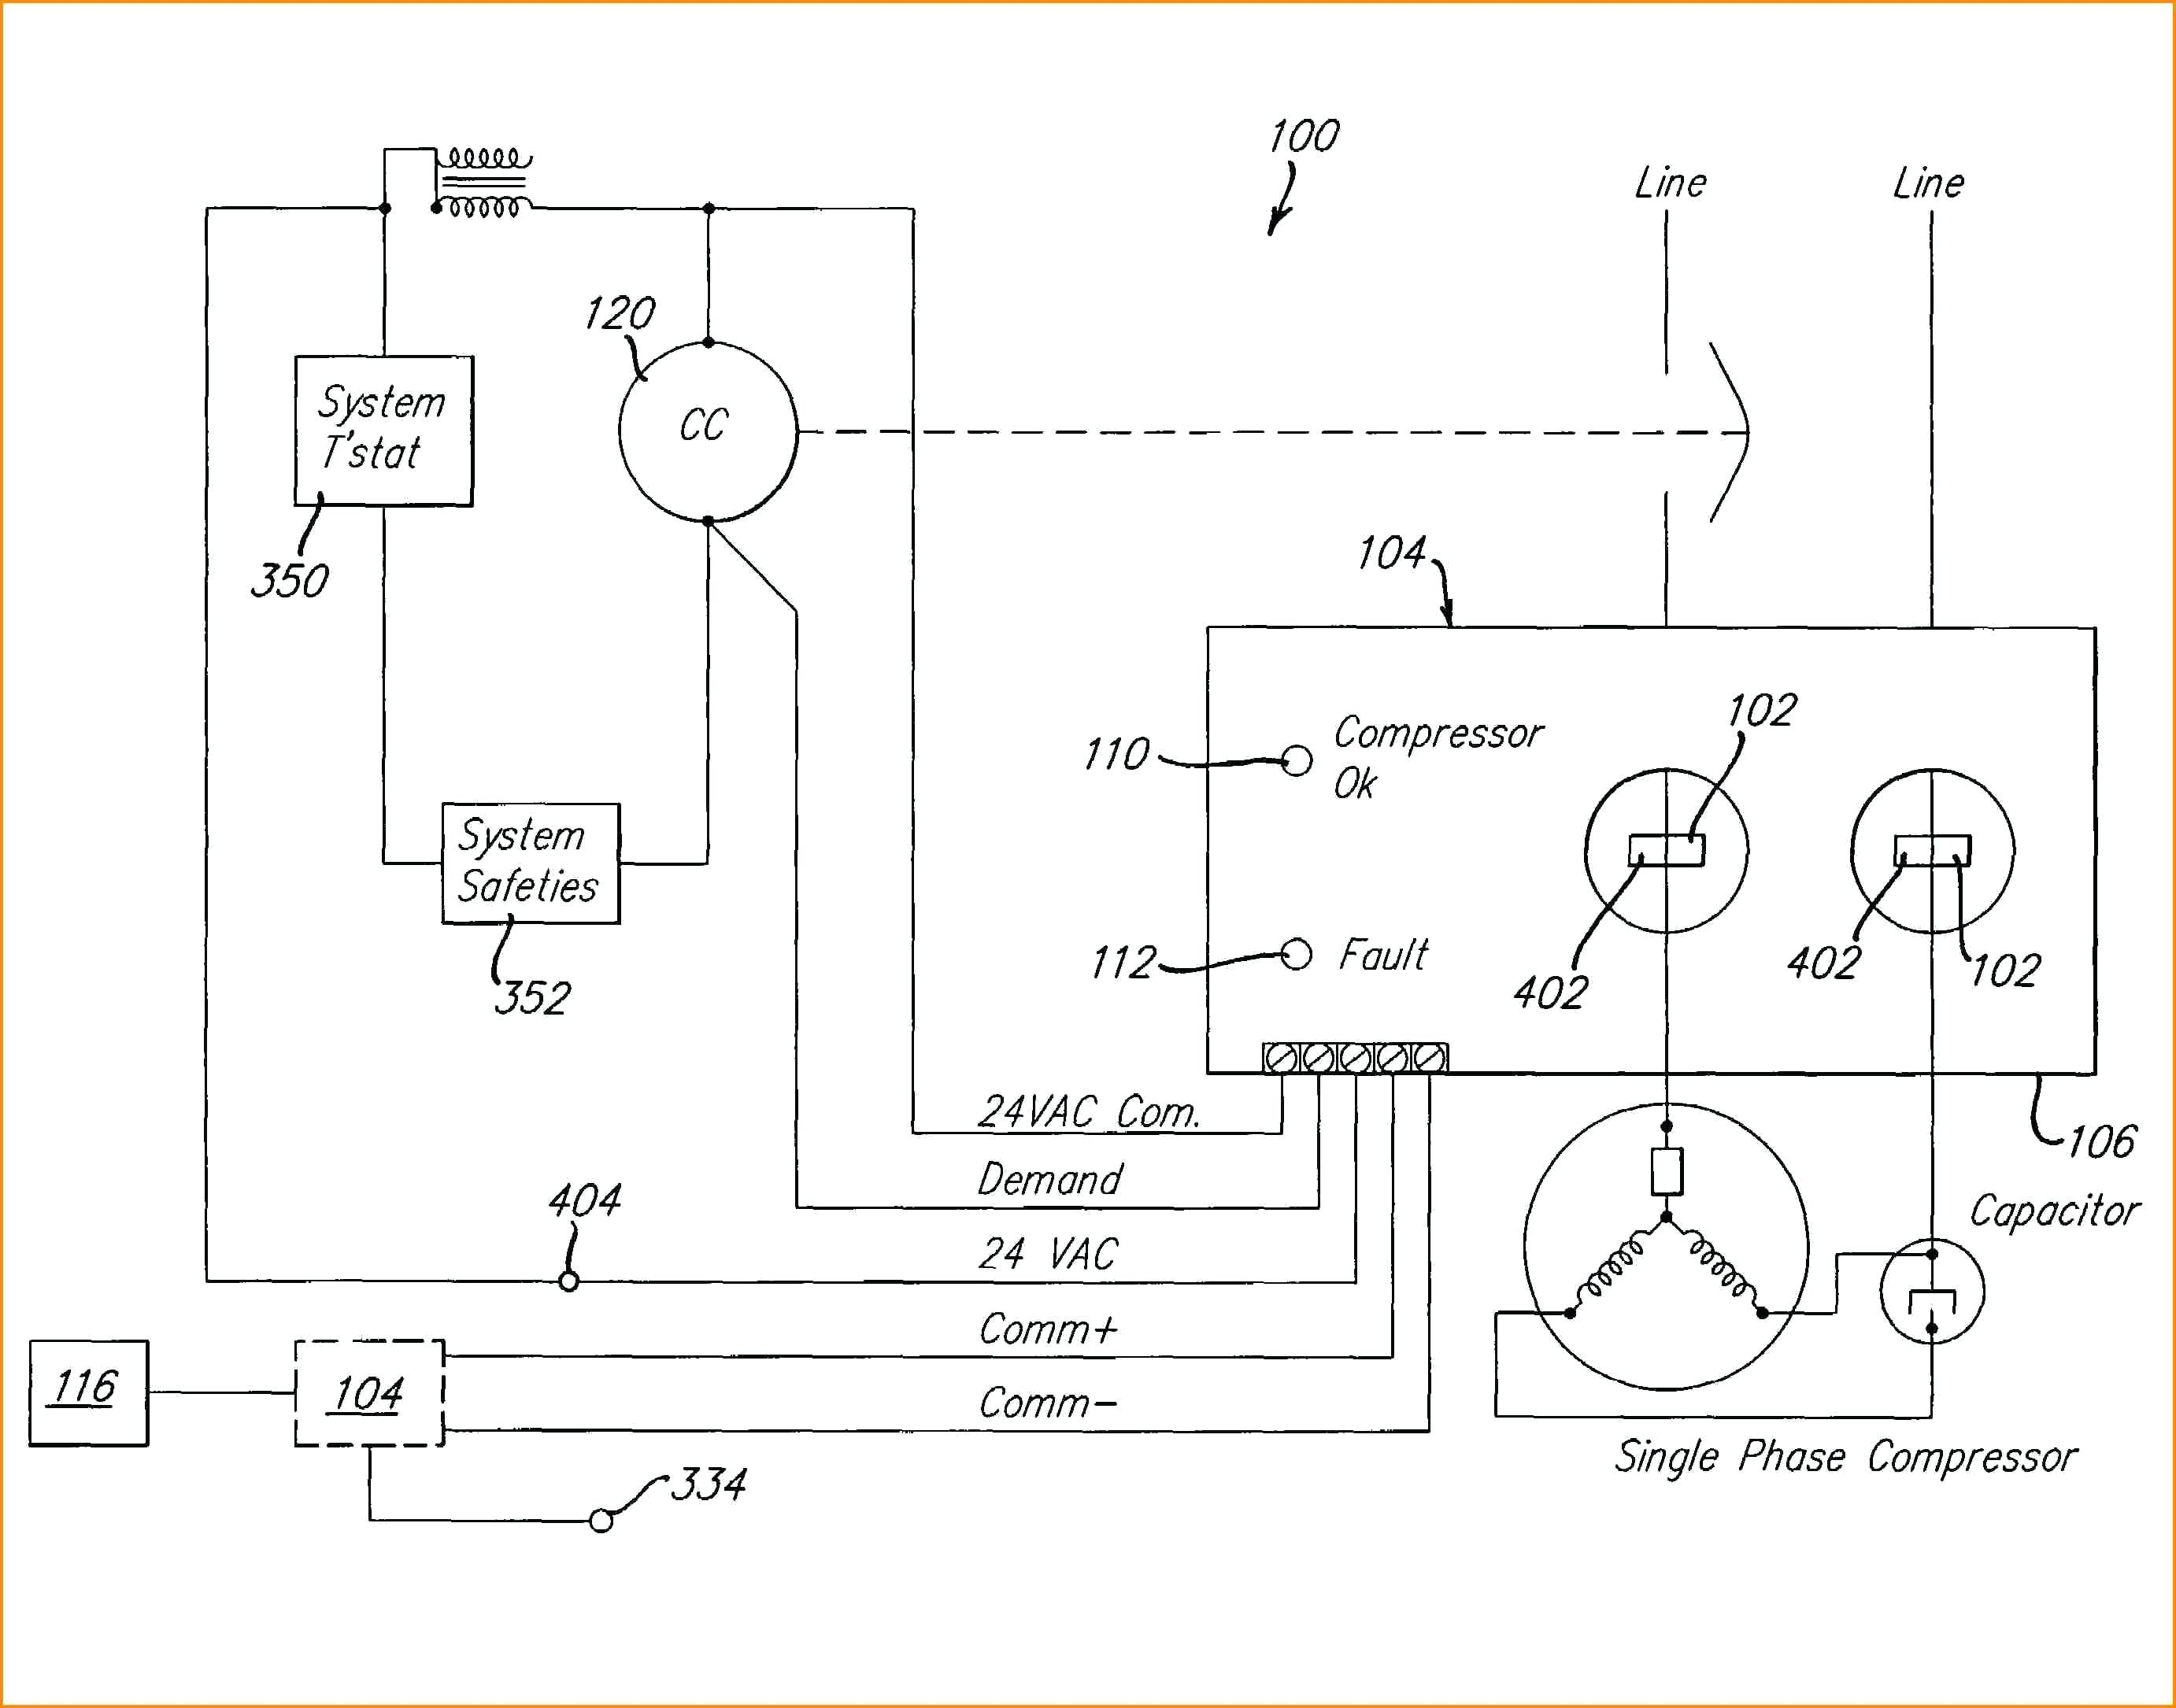 Oasis Air Compressor Wiring Diagrams